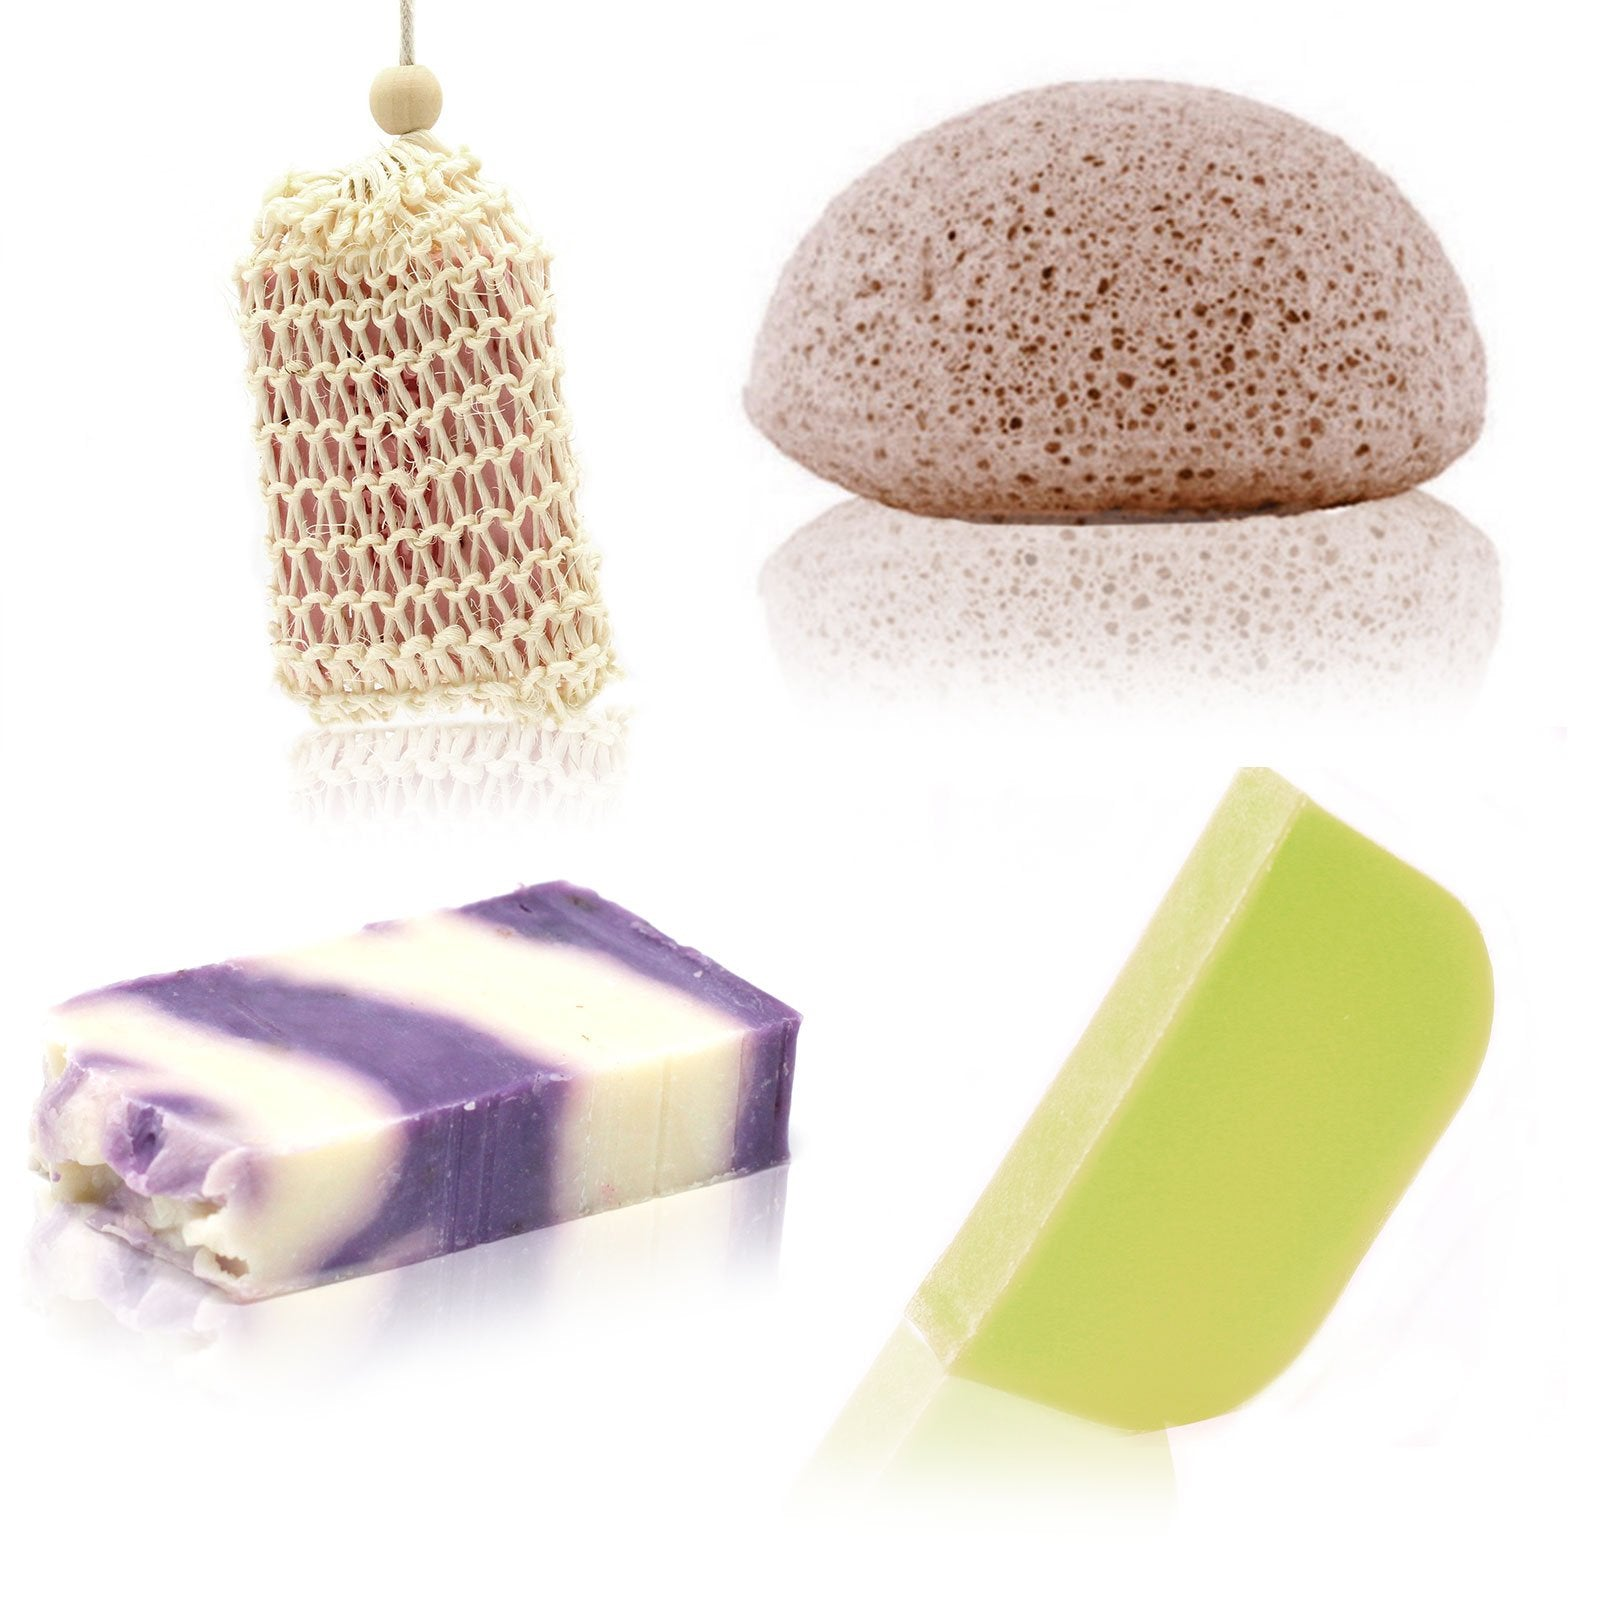 Soap, Solid Shampoo & Sponge Set, Hair Care by Low Cost Gifts